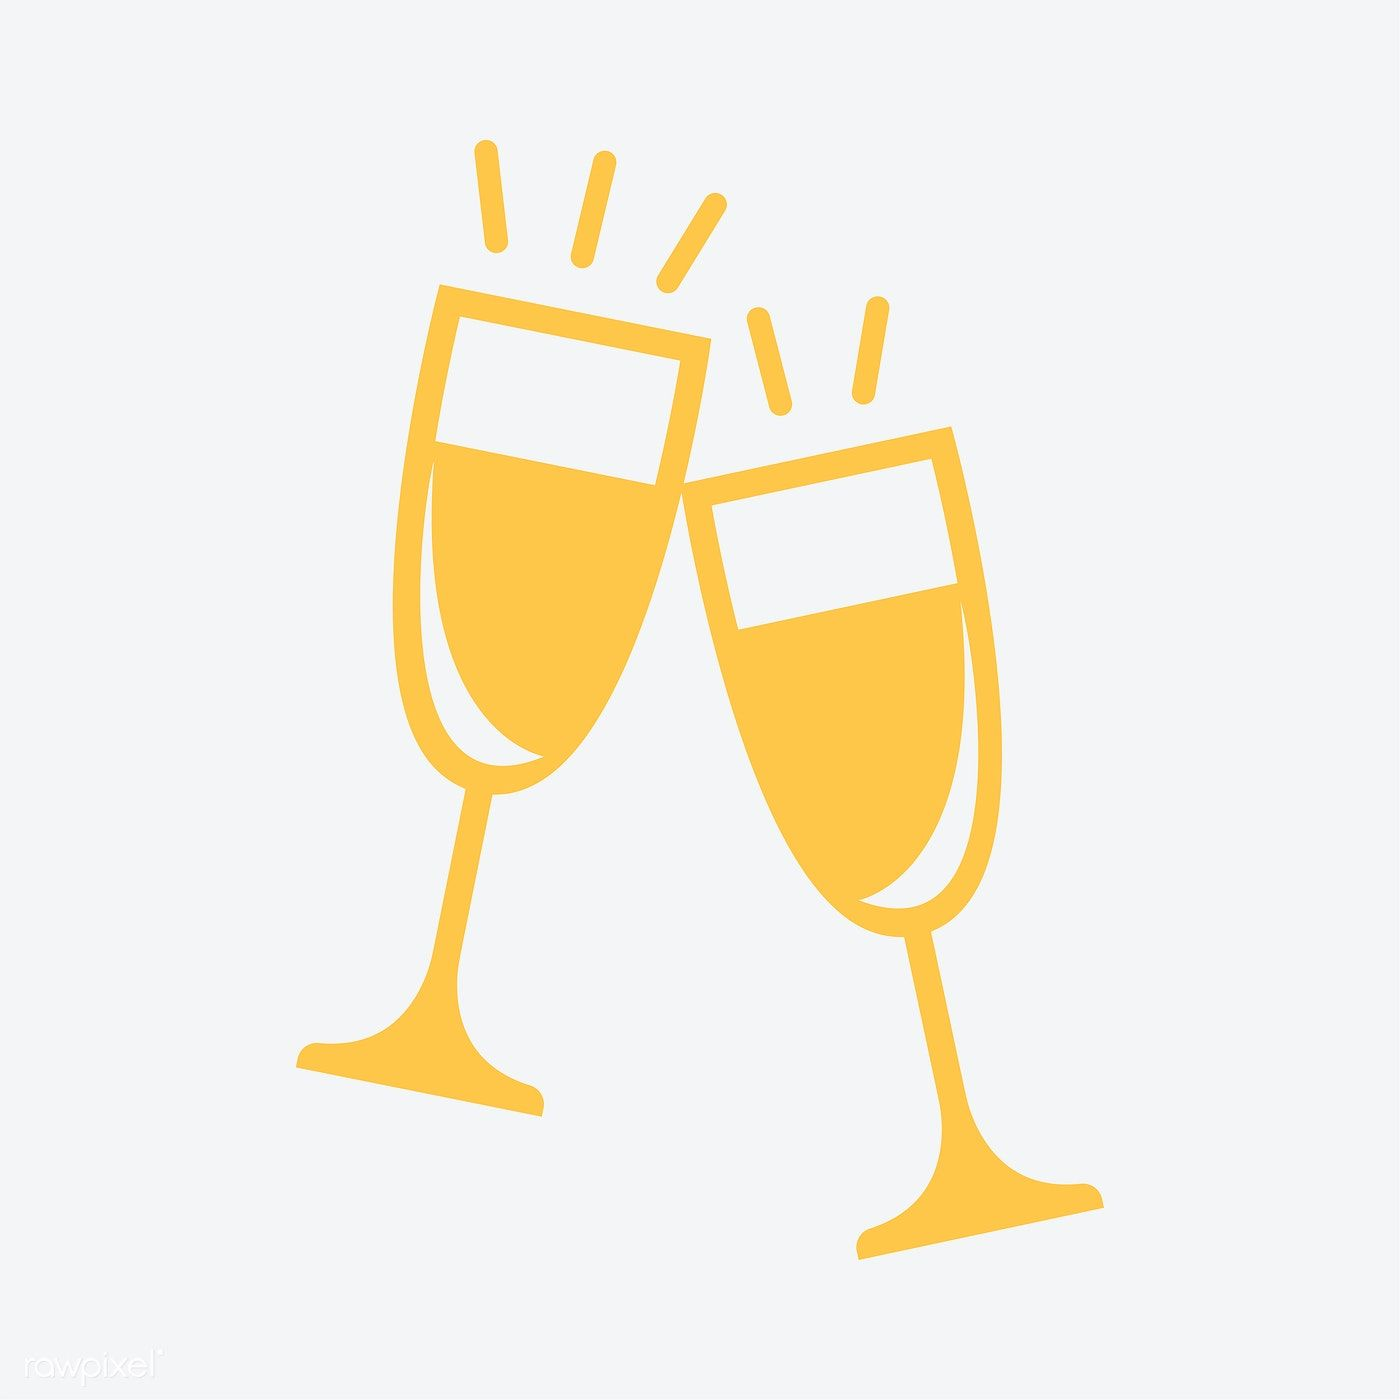 Champagne Glasses Hand Drawn Icons How To Draw Hands Hair Logo Design Hand Drawn Icons